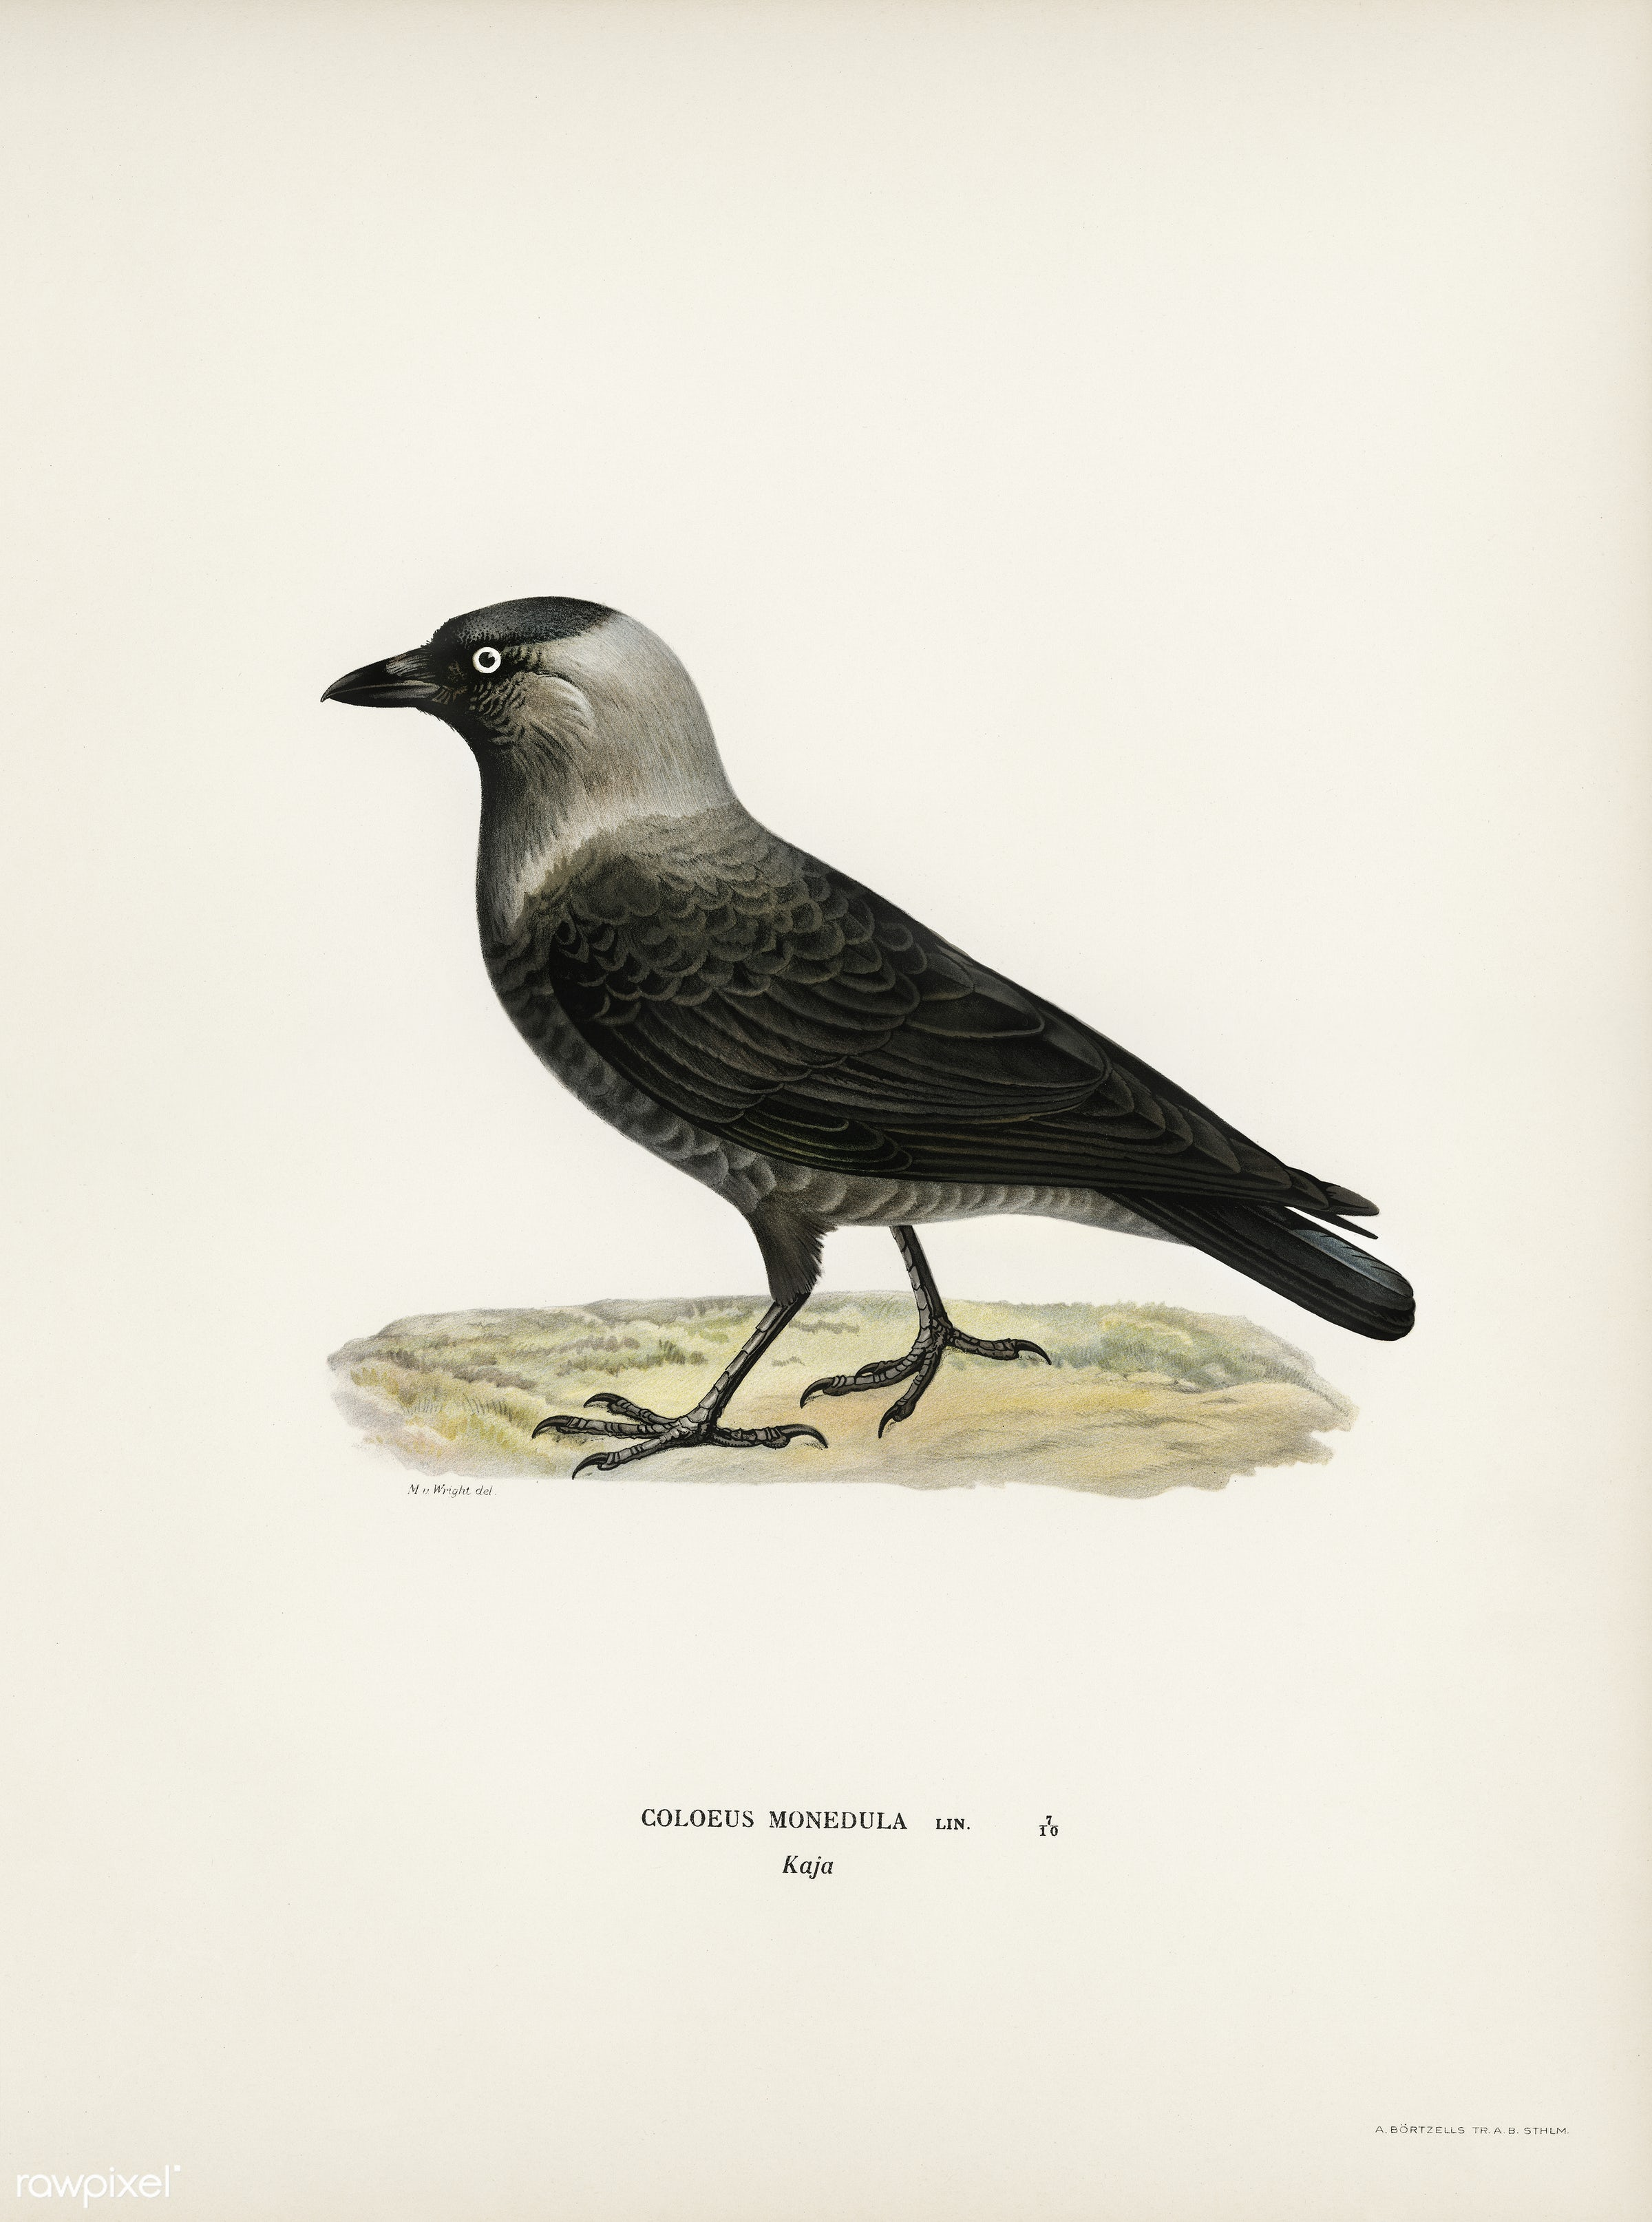 Western jackdaw (Coloeus monedula) illustrated by the von Wright brothers. Digitally enhanced from our own 1929 folio...